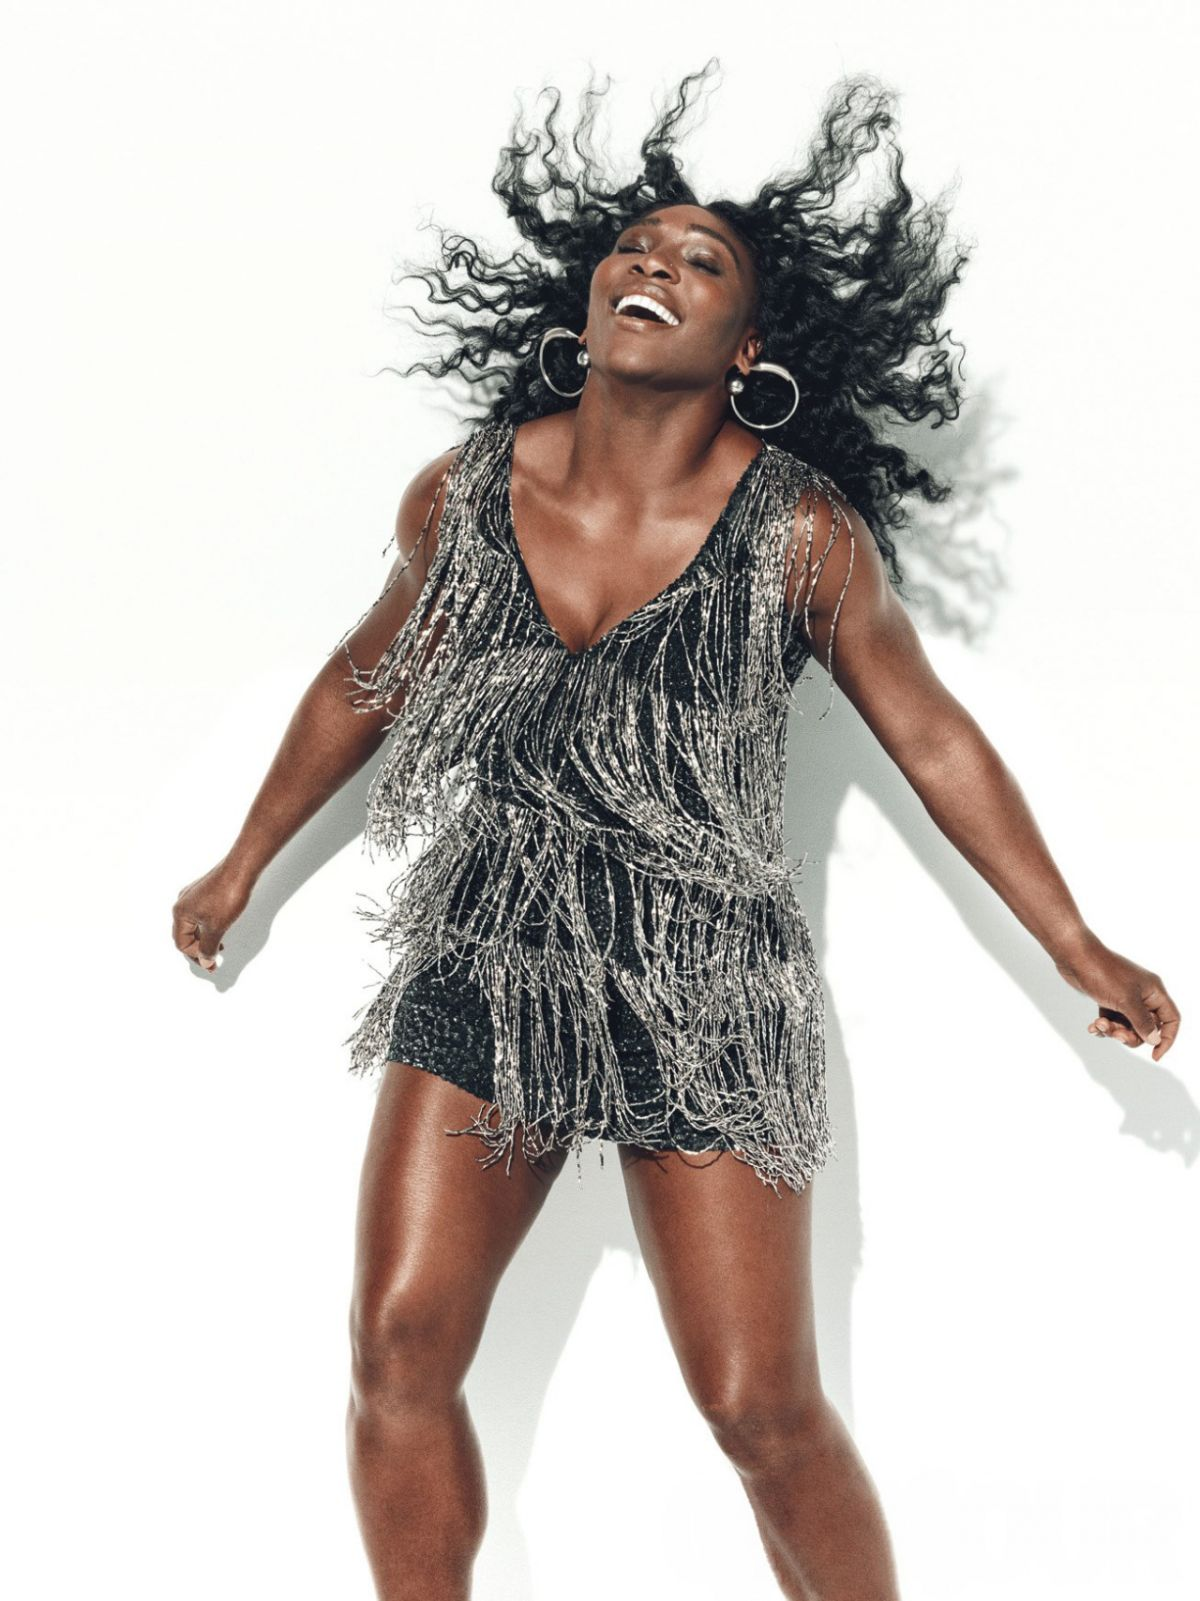 serena williams - photo #32